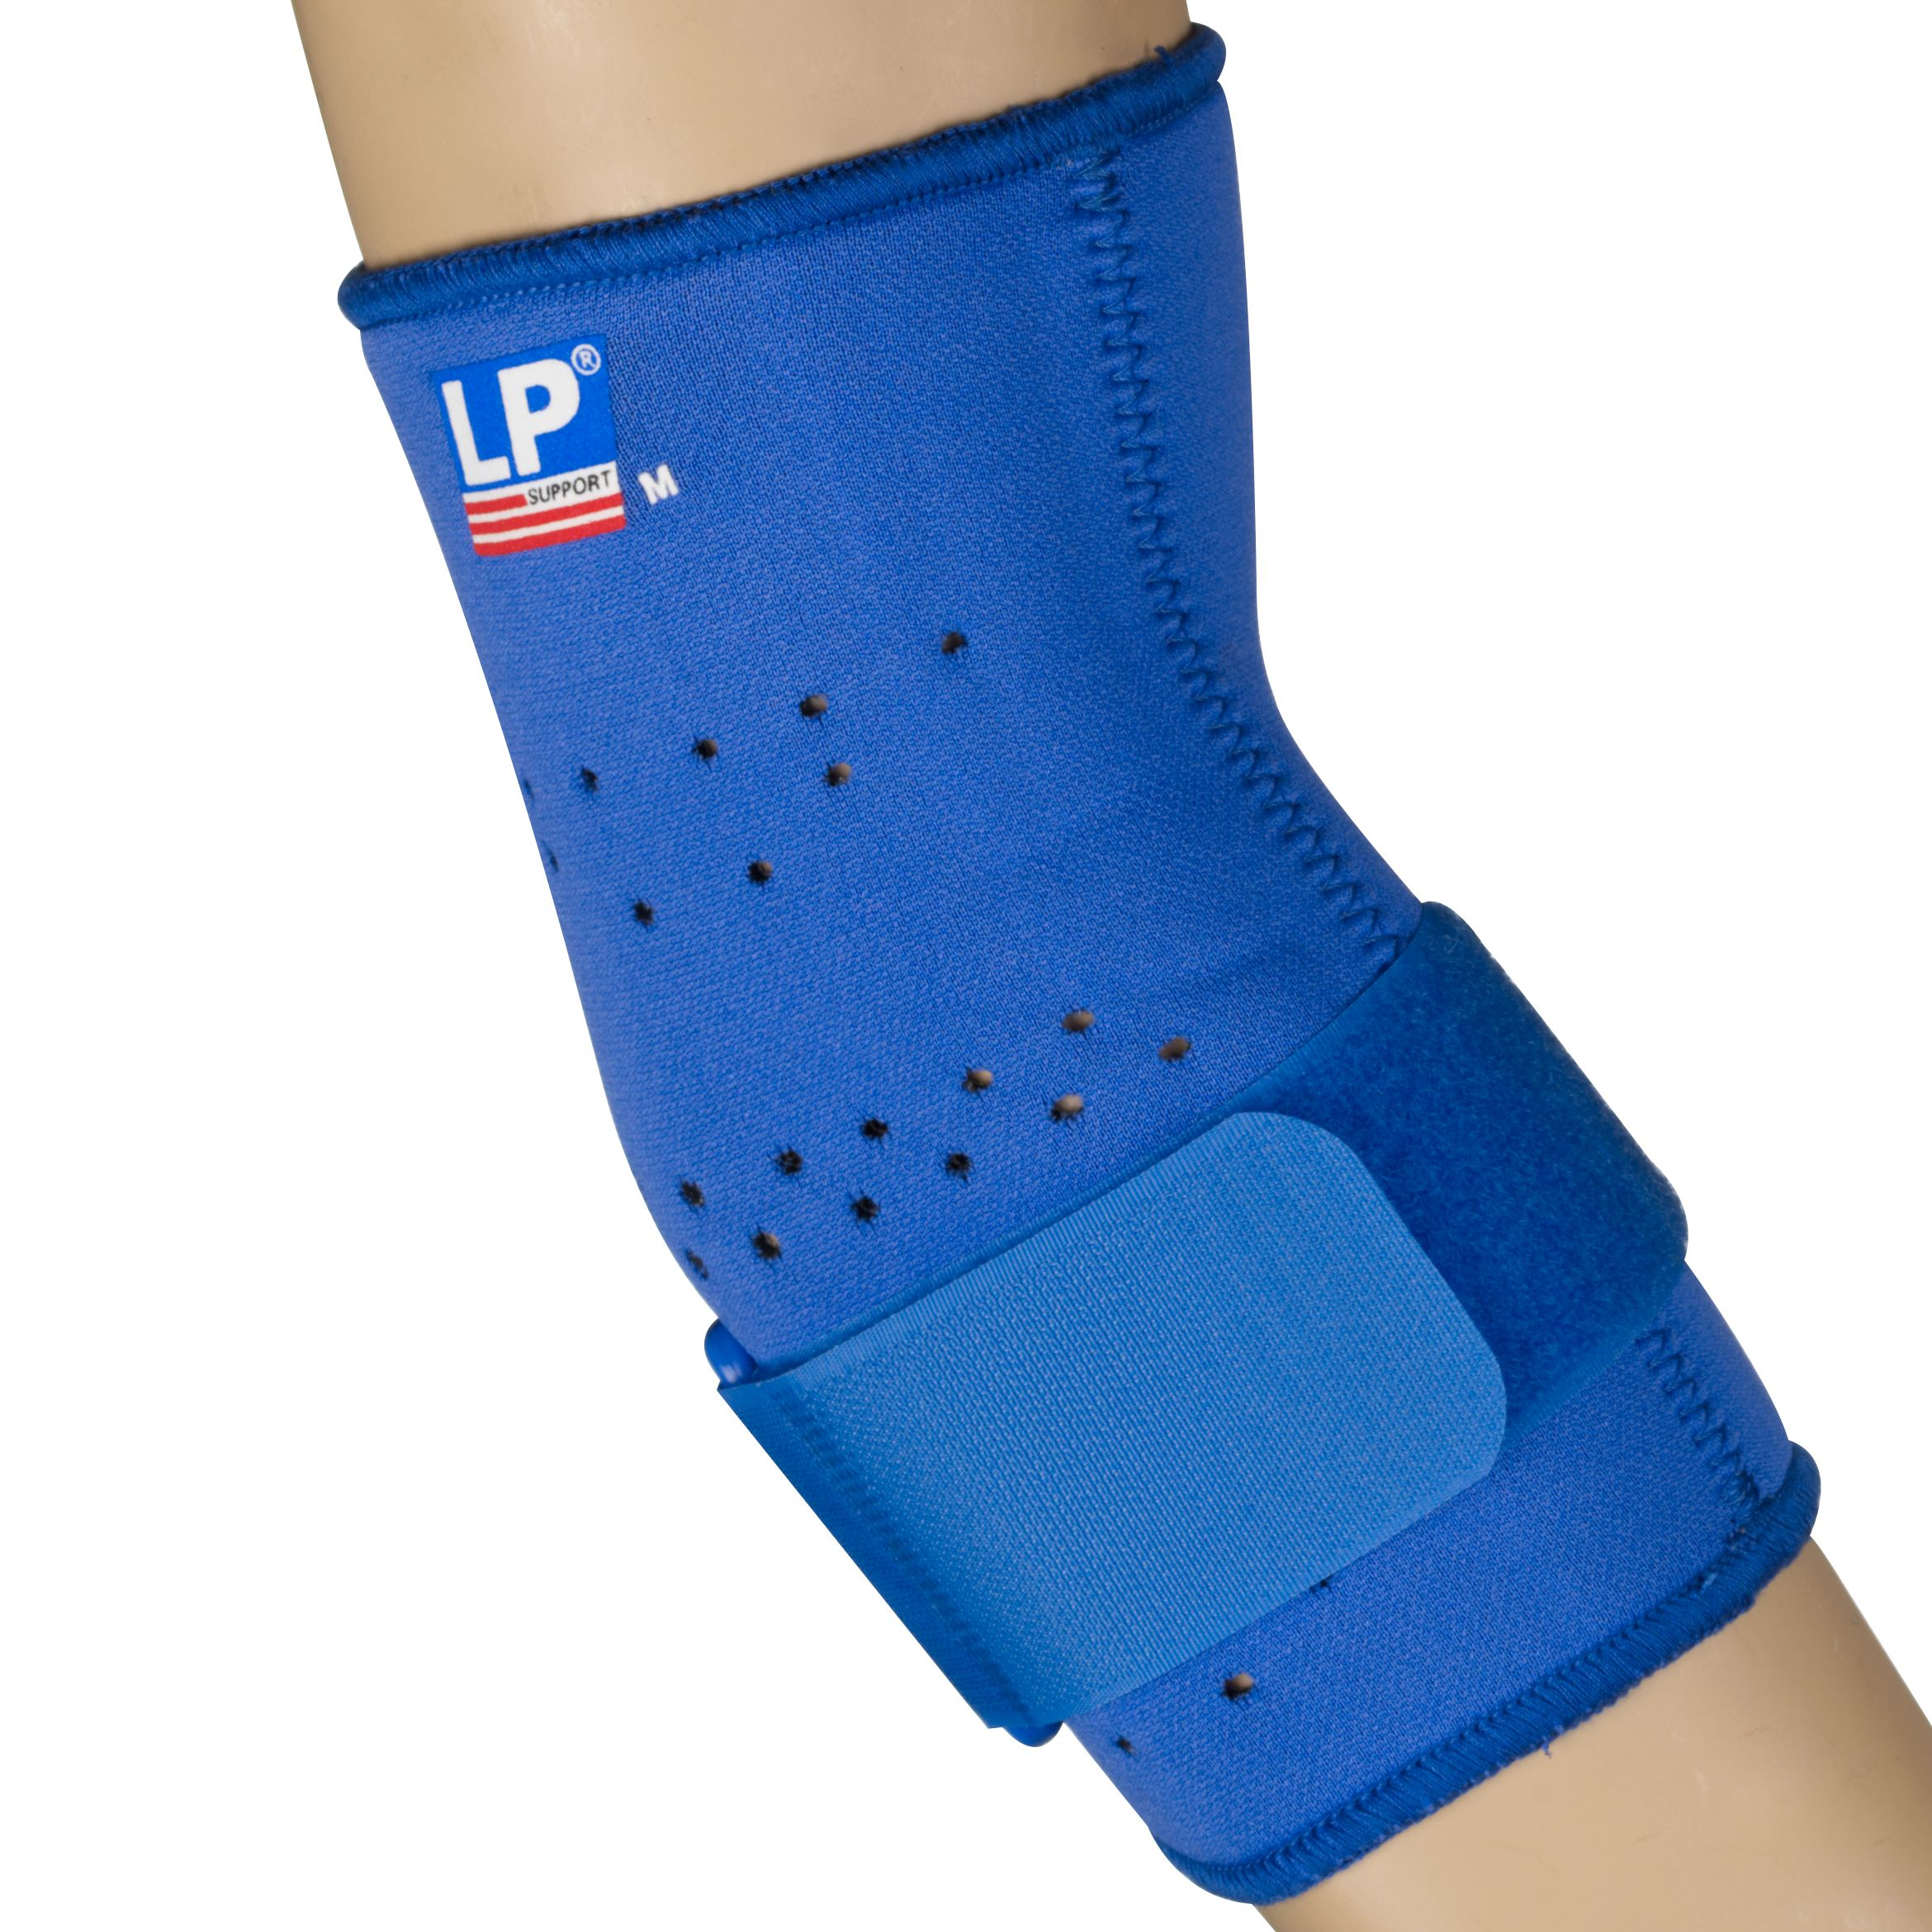 Lp Supports LP Supports Neoprene Tennis Elbow Support with Strap, Blue